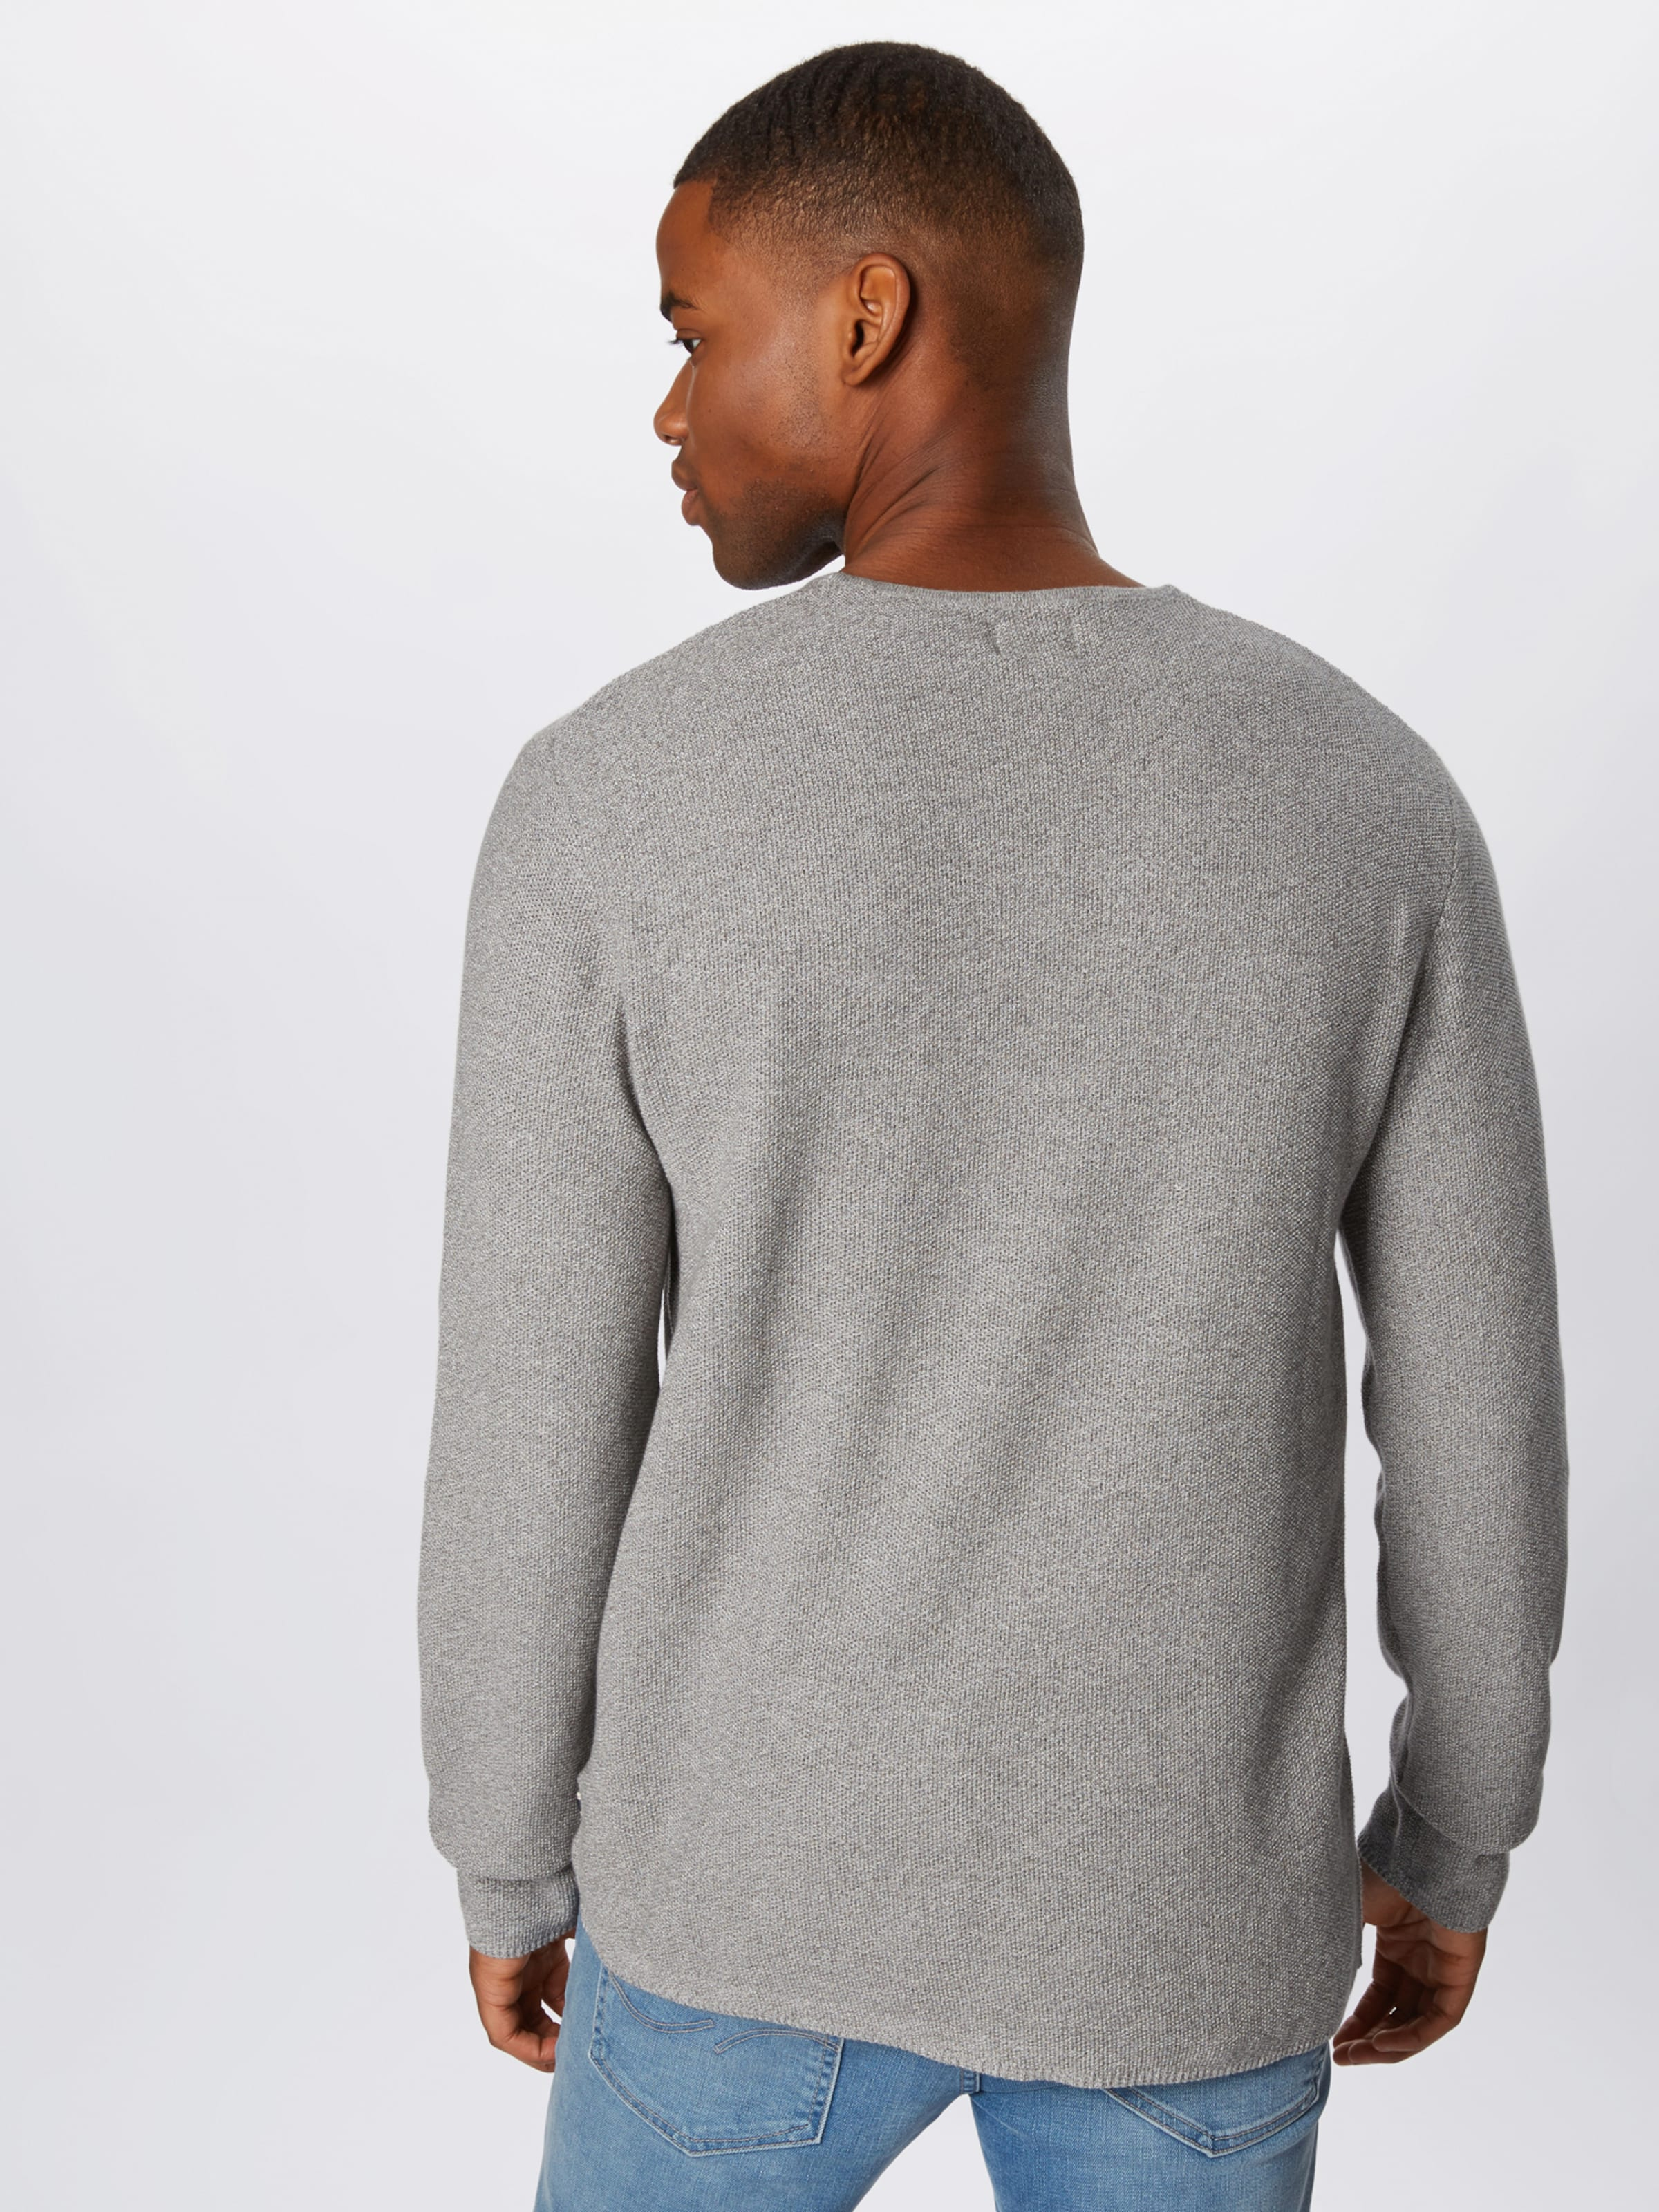 En Jones 'eron' Bleu Jackamp; Pull over Clair ZPikXuOT